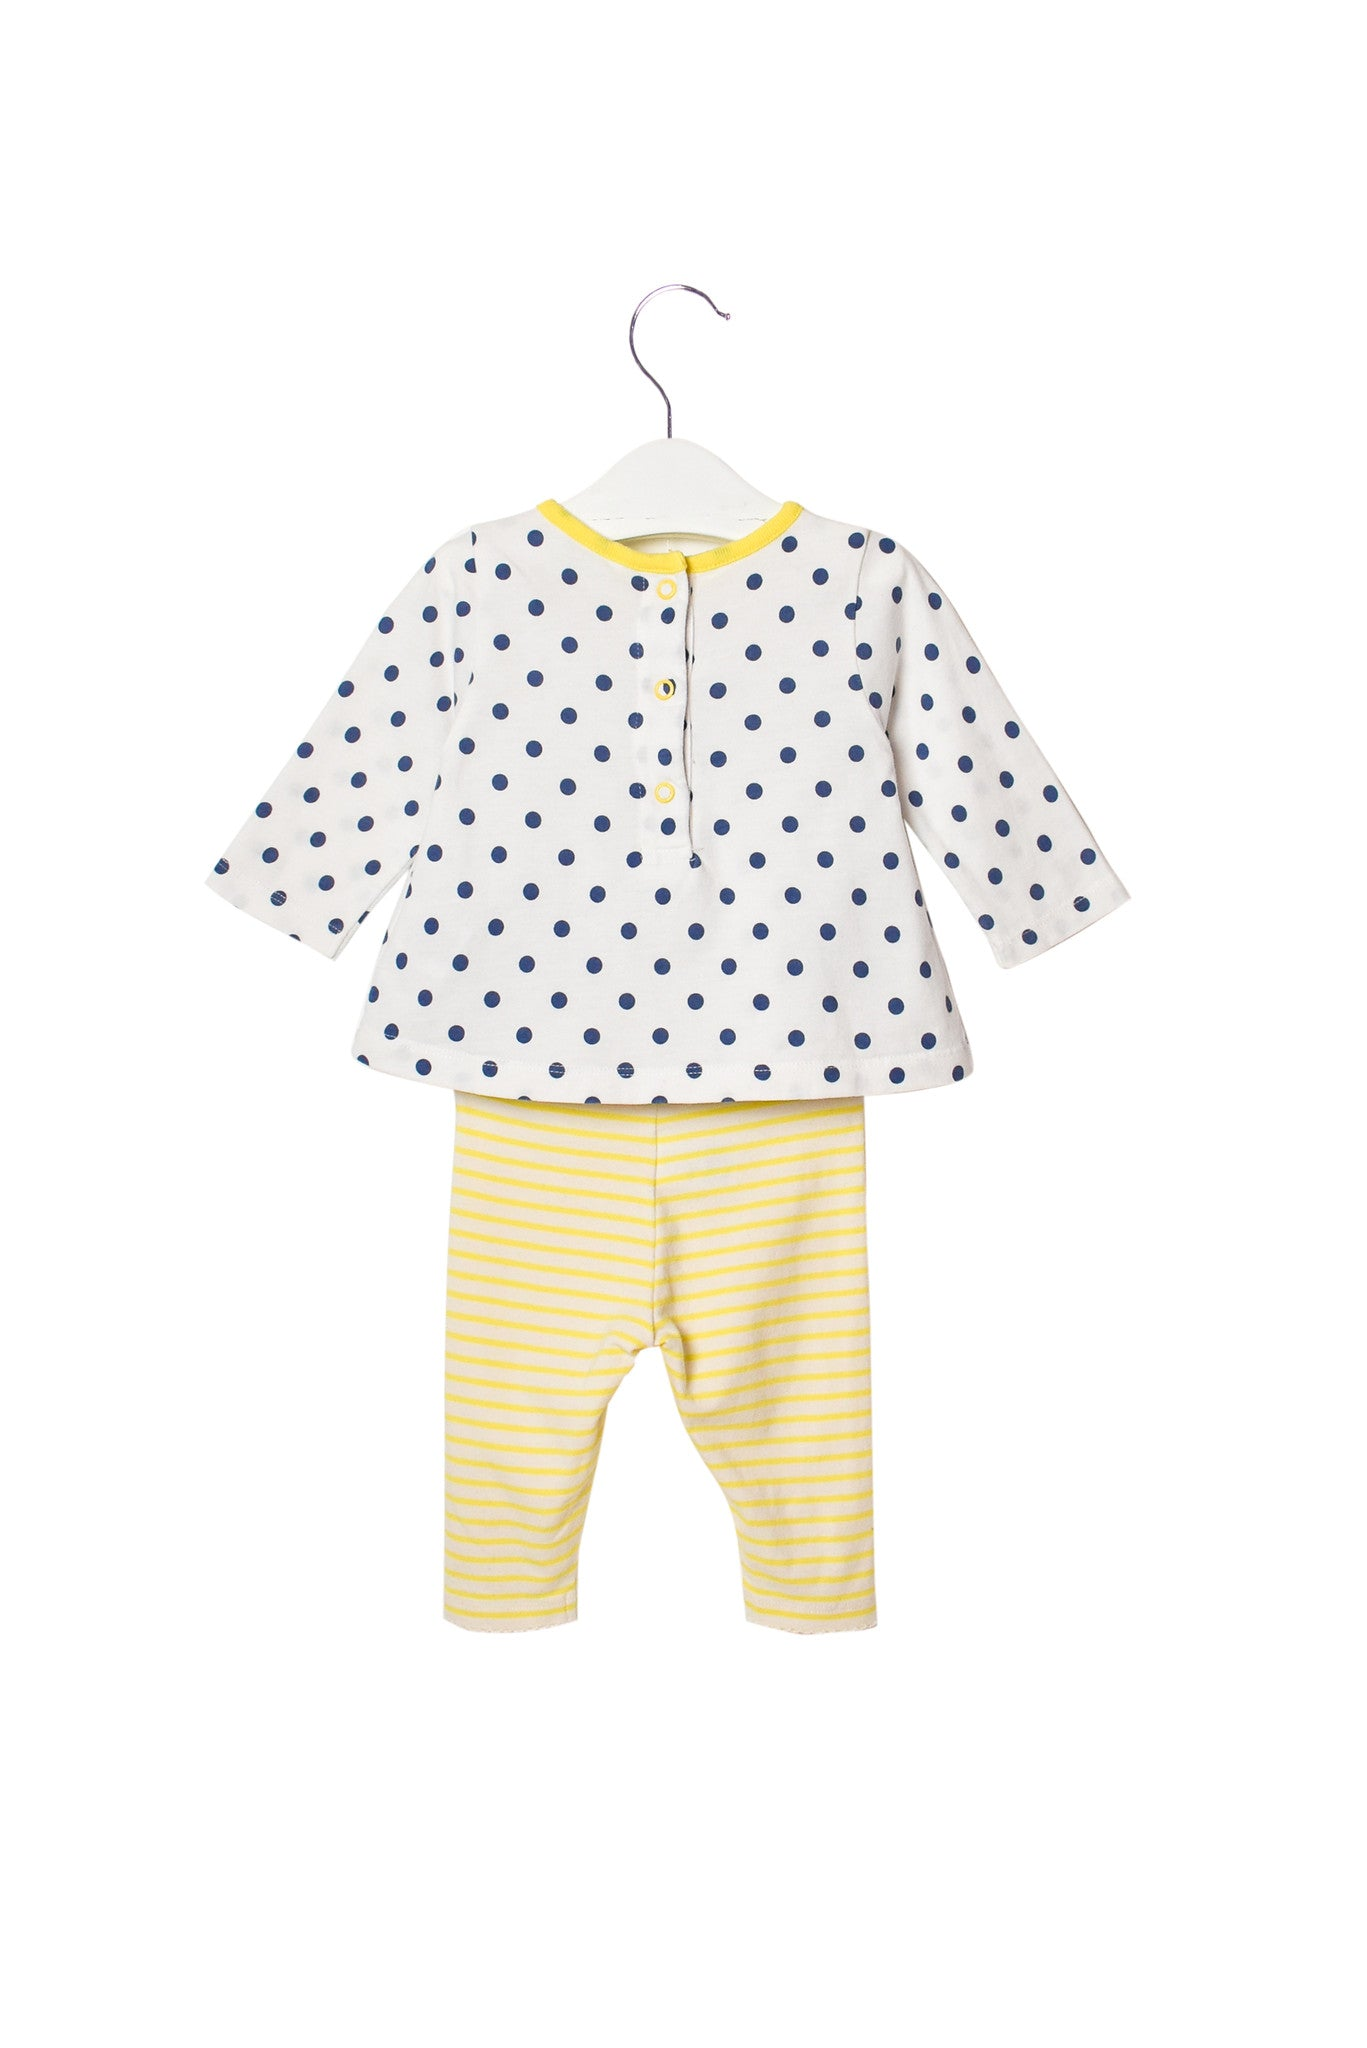 db59da32f8a69 10003552 Mini Boden Baby~Top and Leggings 0-3M at Retykle